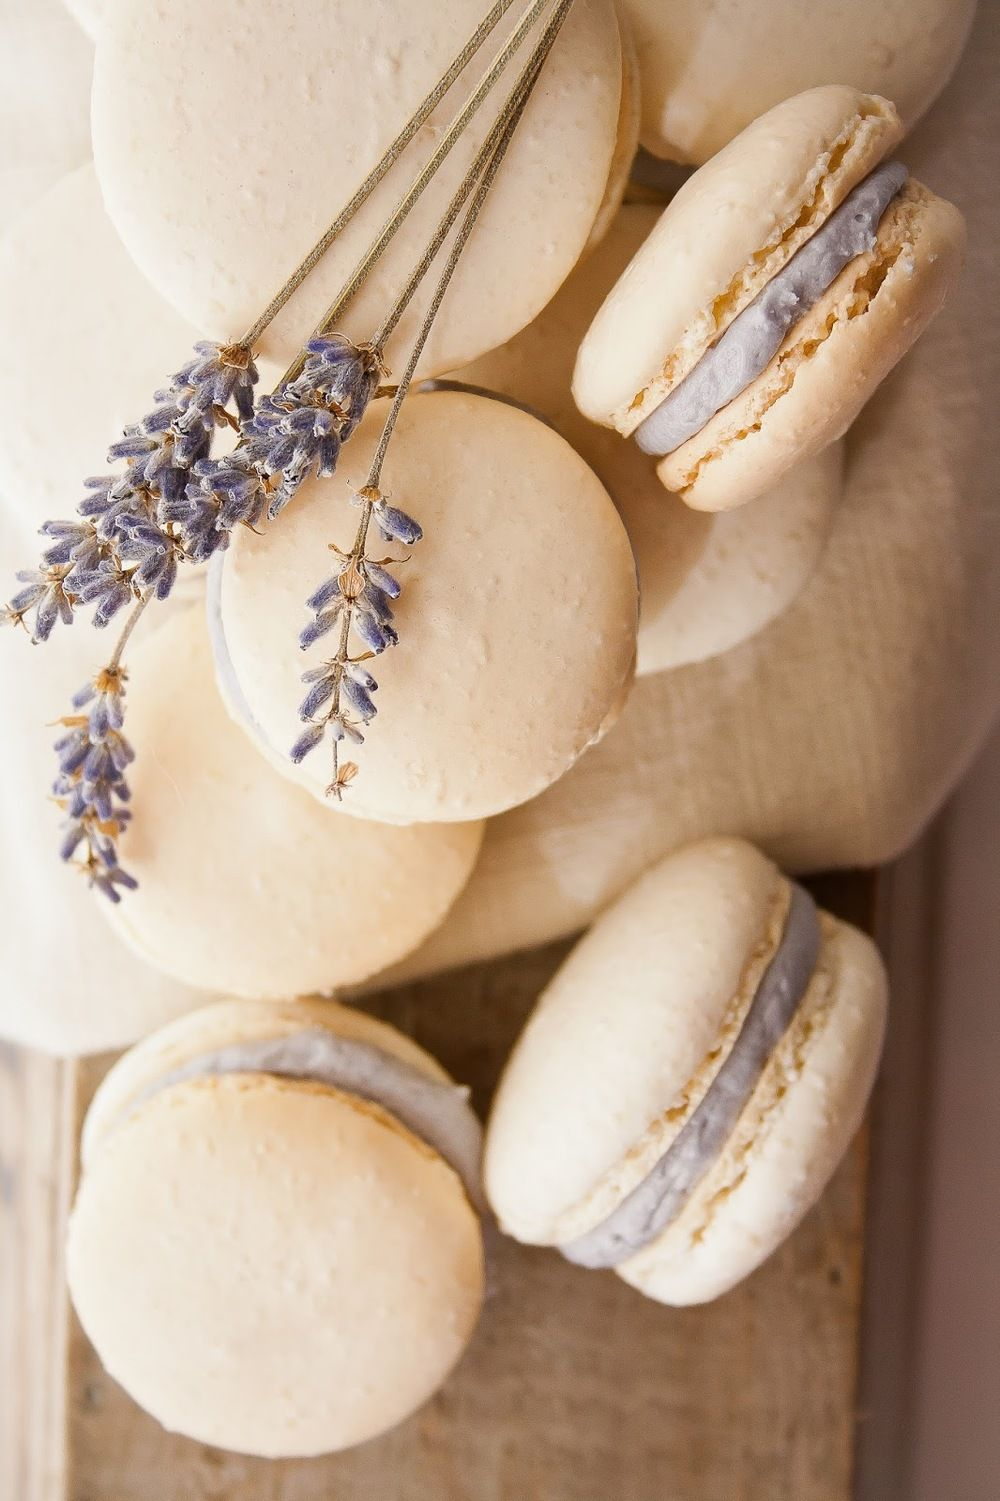 These were not originally what I planned to make. For weeks, I was dreaming  up a combination of blueberry, honey, and lavender. I decided onmacarons  last week, but even then, there were still possibilities. Blueberry  macarons with honey lavender filling? Honeymacarons? I eventually decided  on lavender macarons with honey blueberry buttercream. They did not turn out well at all.  Massive failure. The macarons were waaaaay too lavender-y, Iover-mixed the  dough and therefore the…